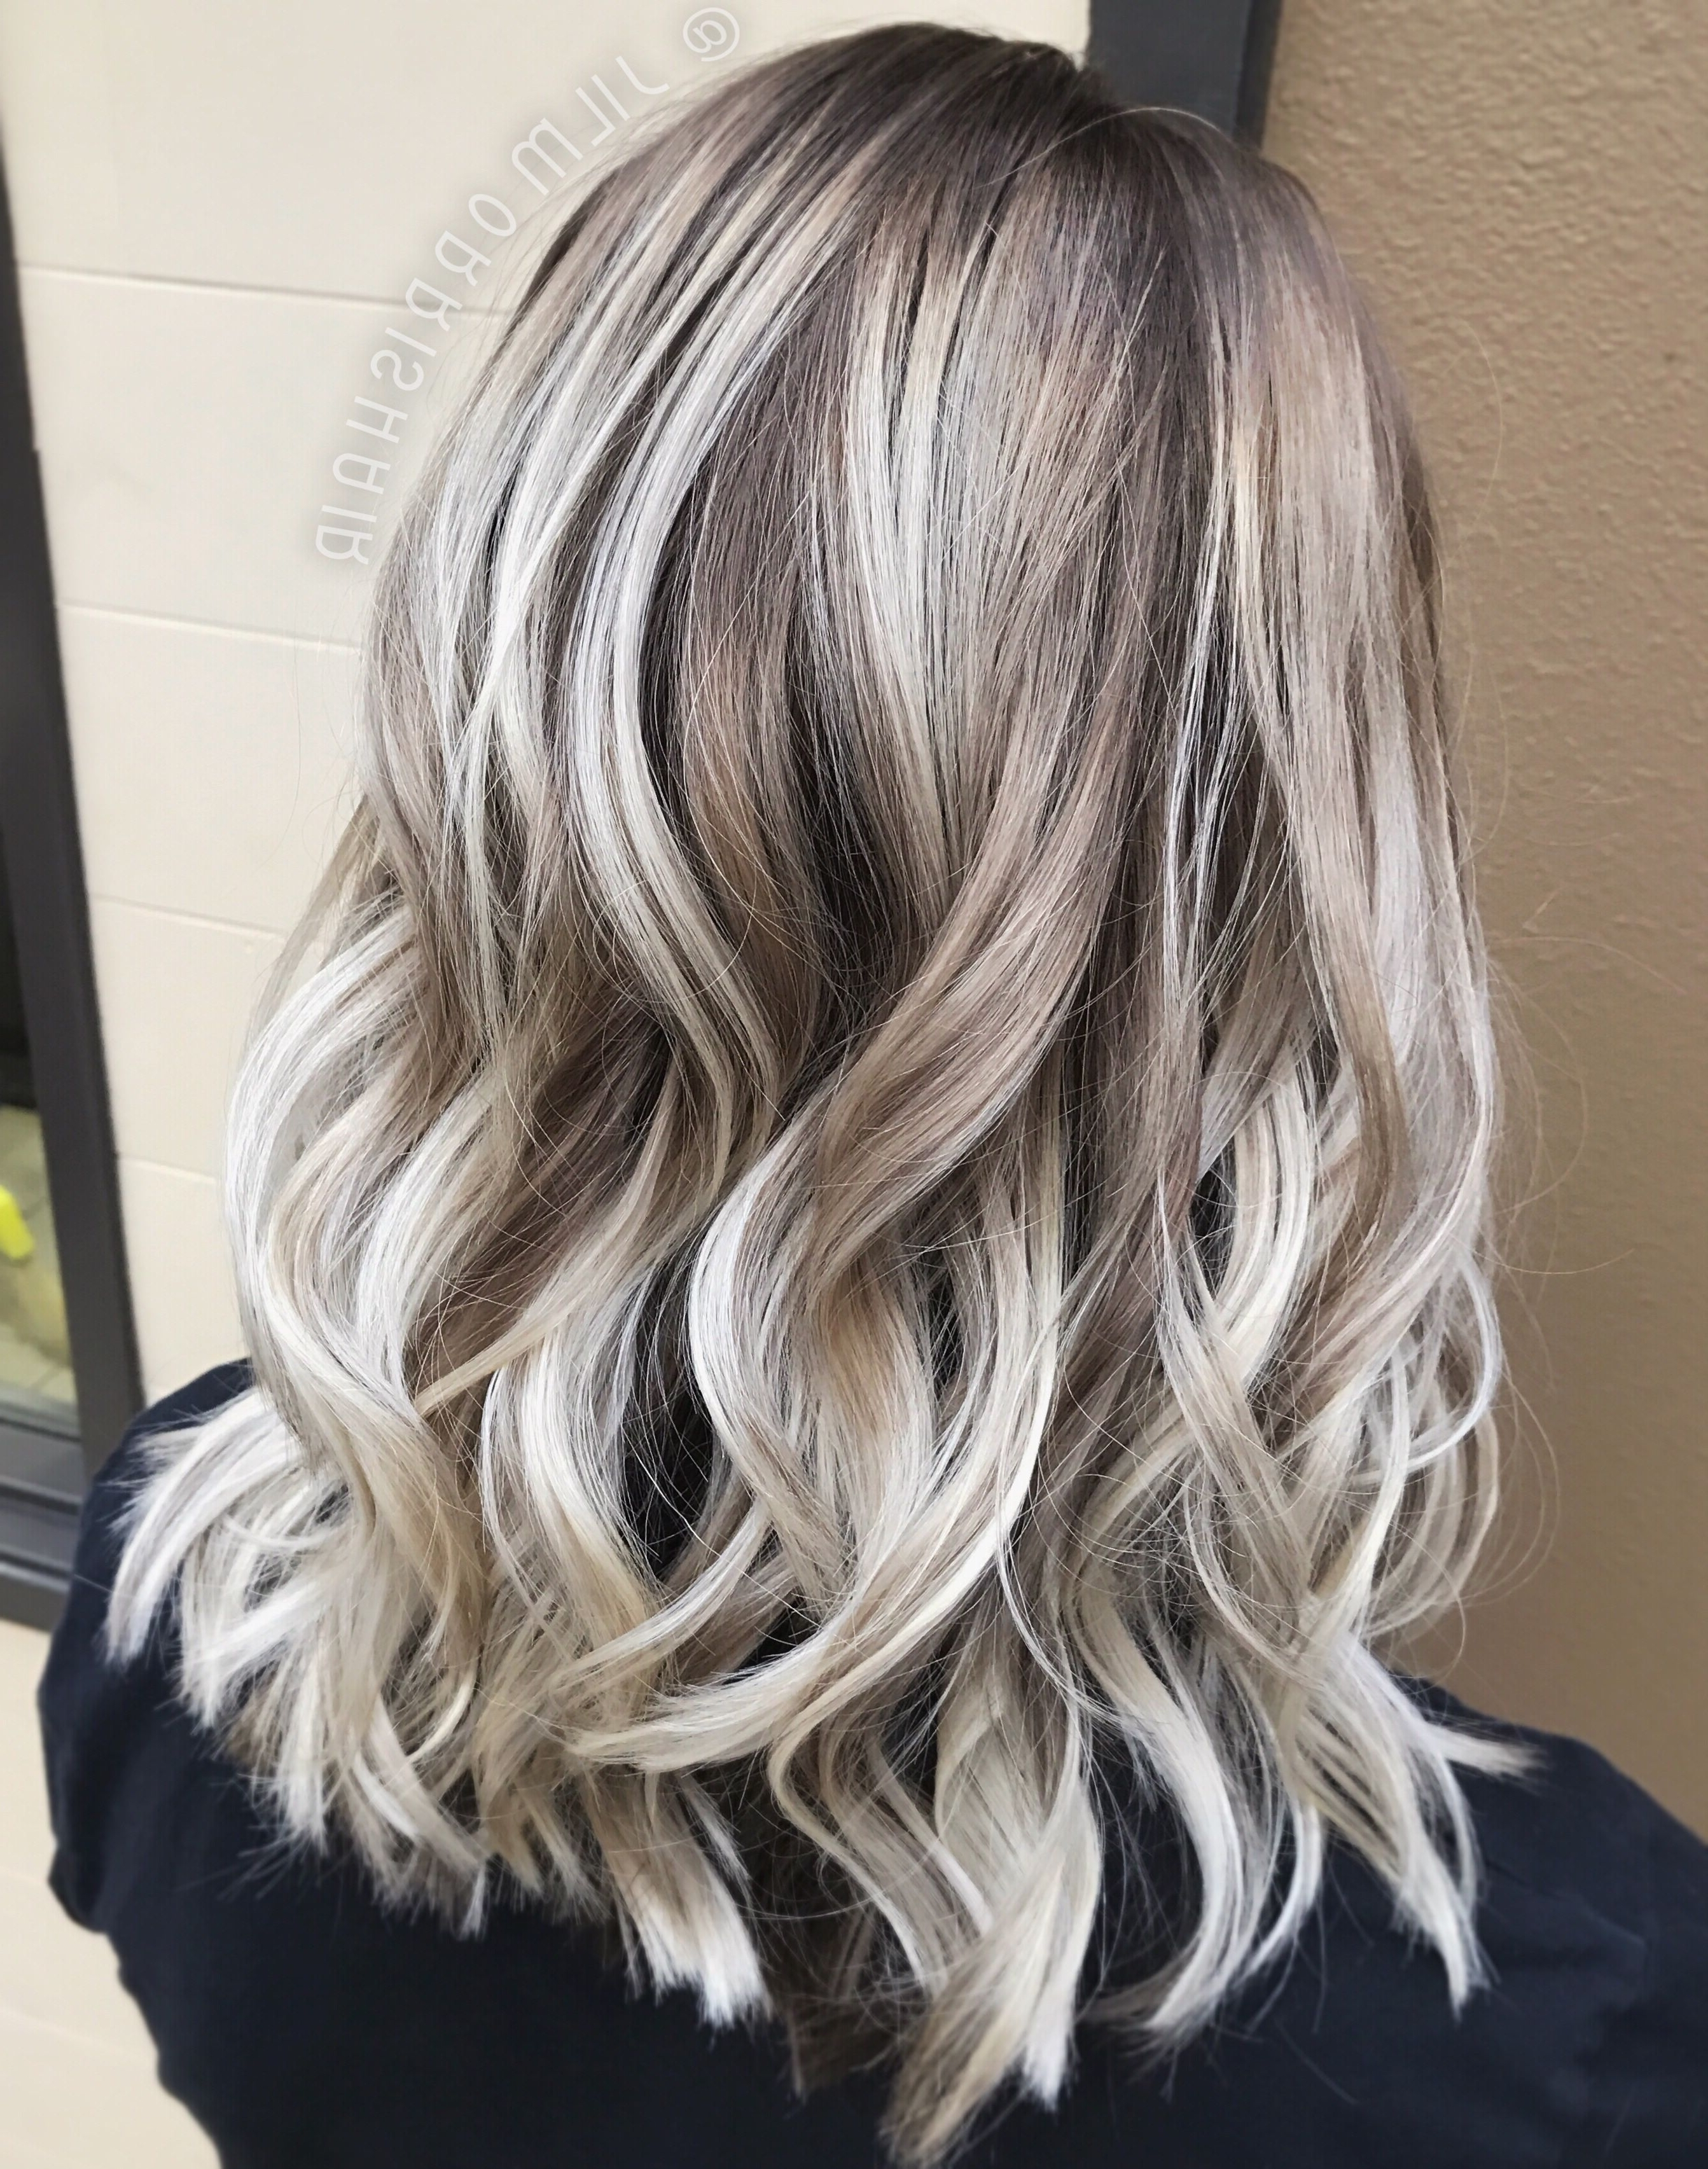 Favorite Sleek White Blonde Lob Hairstyles With White Ash Blonde Balayage, Shadow Root, Curls In A Textured Lob (View 8 of 20)